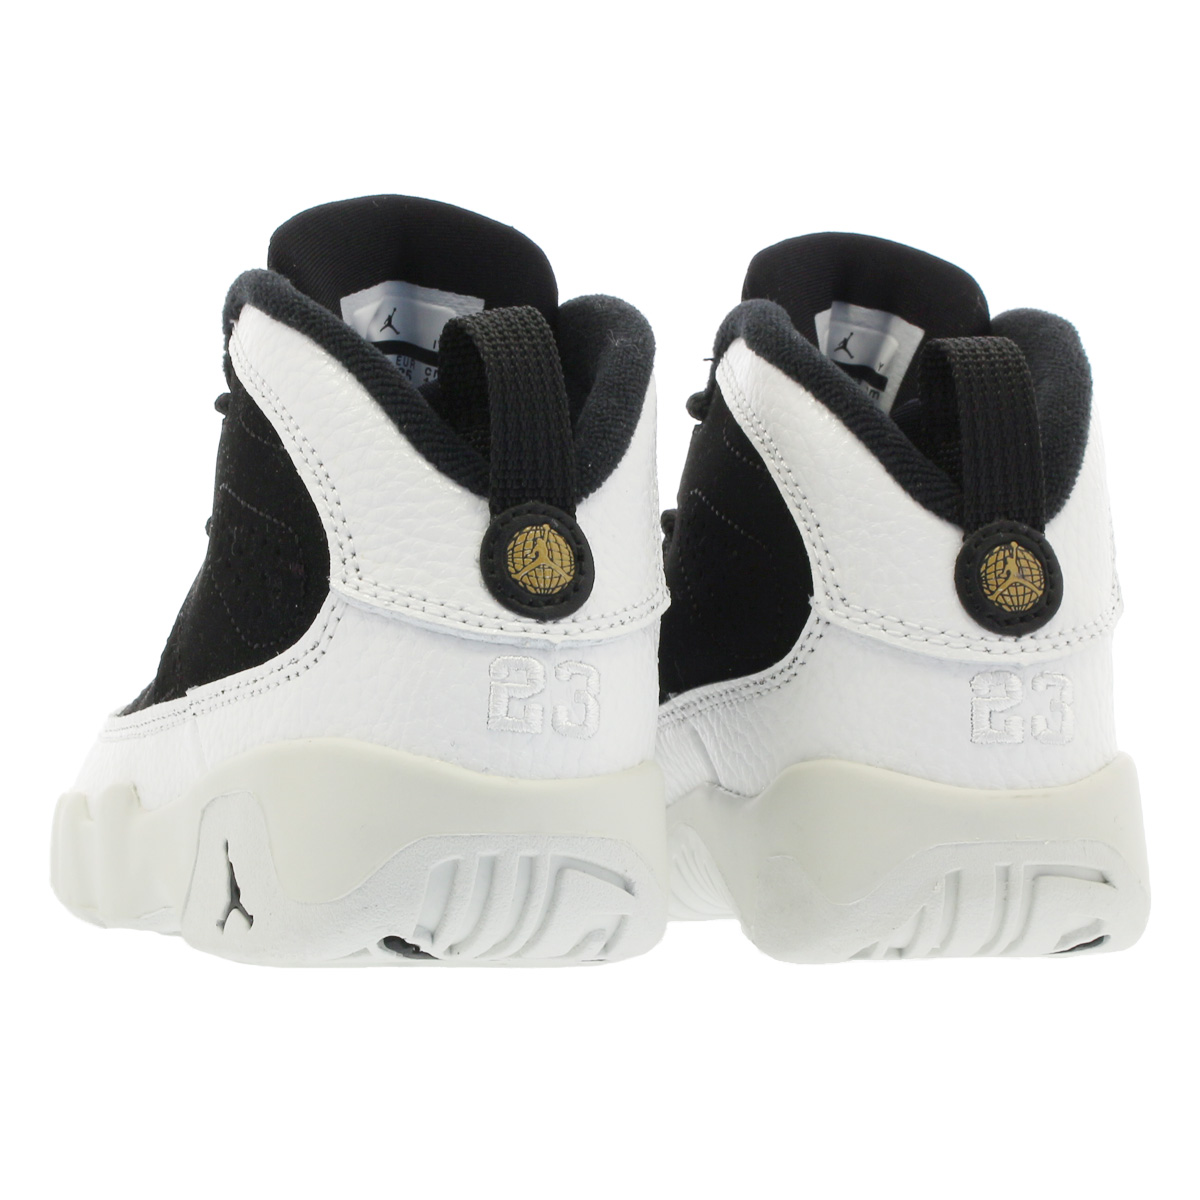 bbefe547dcd NIKE AIR JORDAN 9 RETRO TD나이키 에어 조던 9 레트르 TD BLACK SUMMIT WHITE METALLIC  GOLD 401812-021